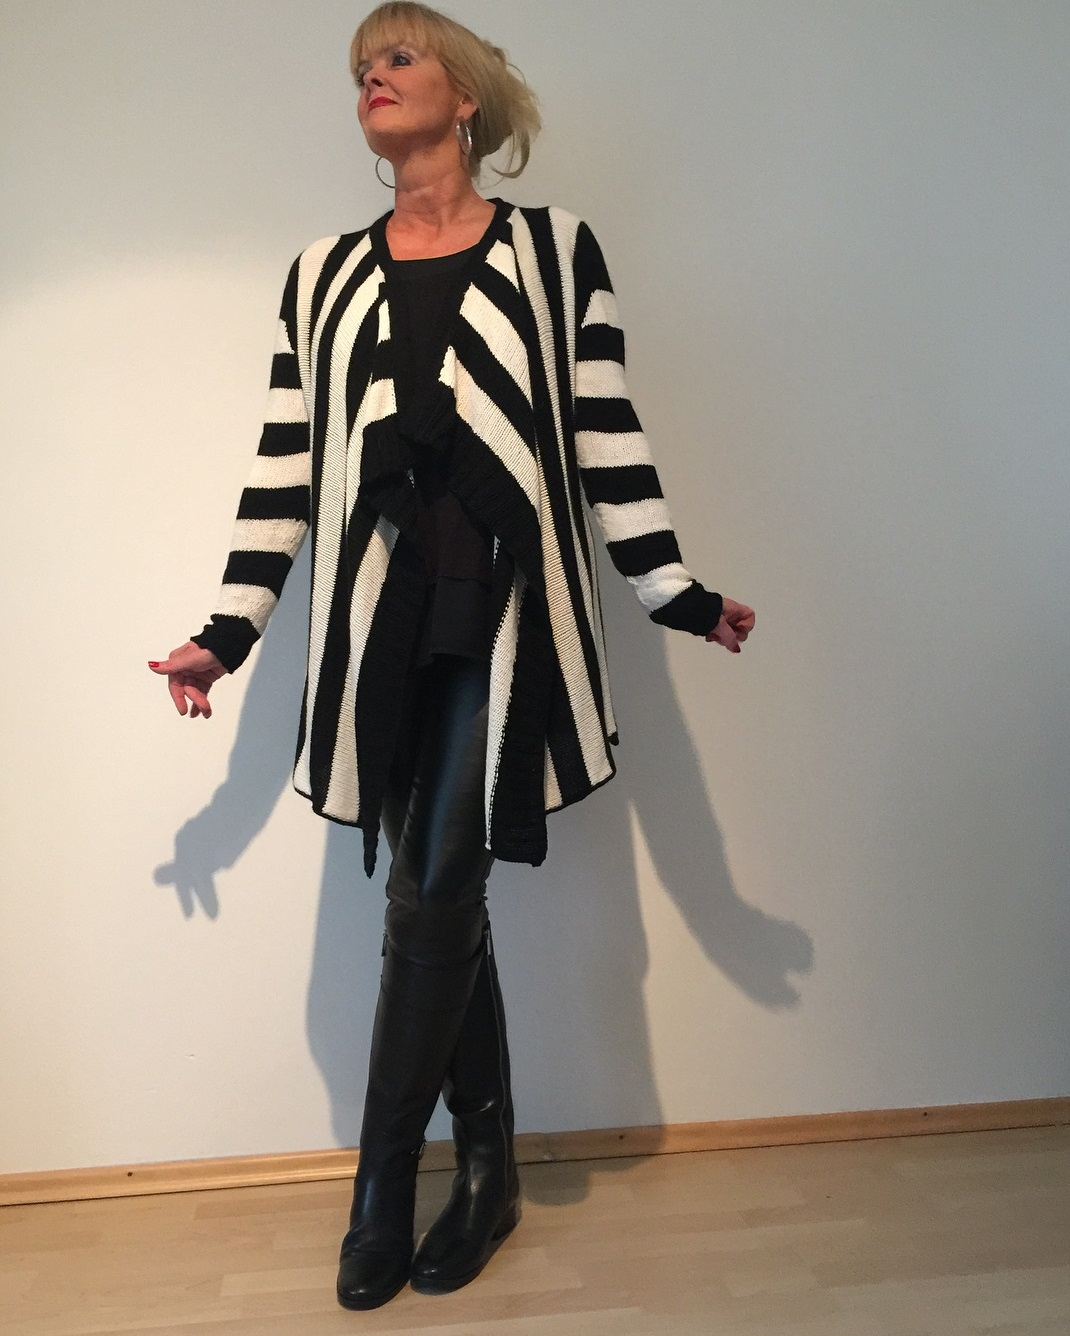 Black & White Stripes Stylish Sweater With Leather Pant